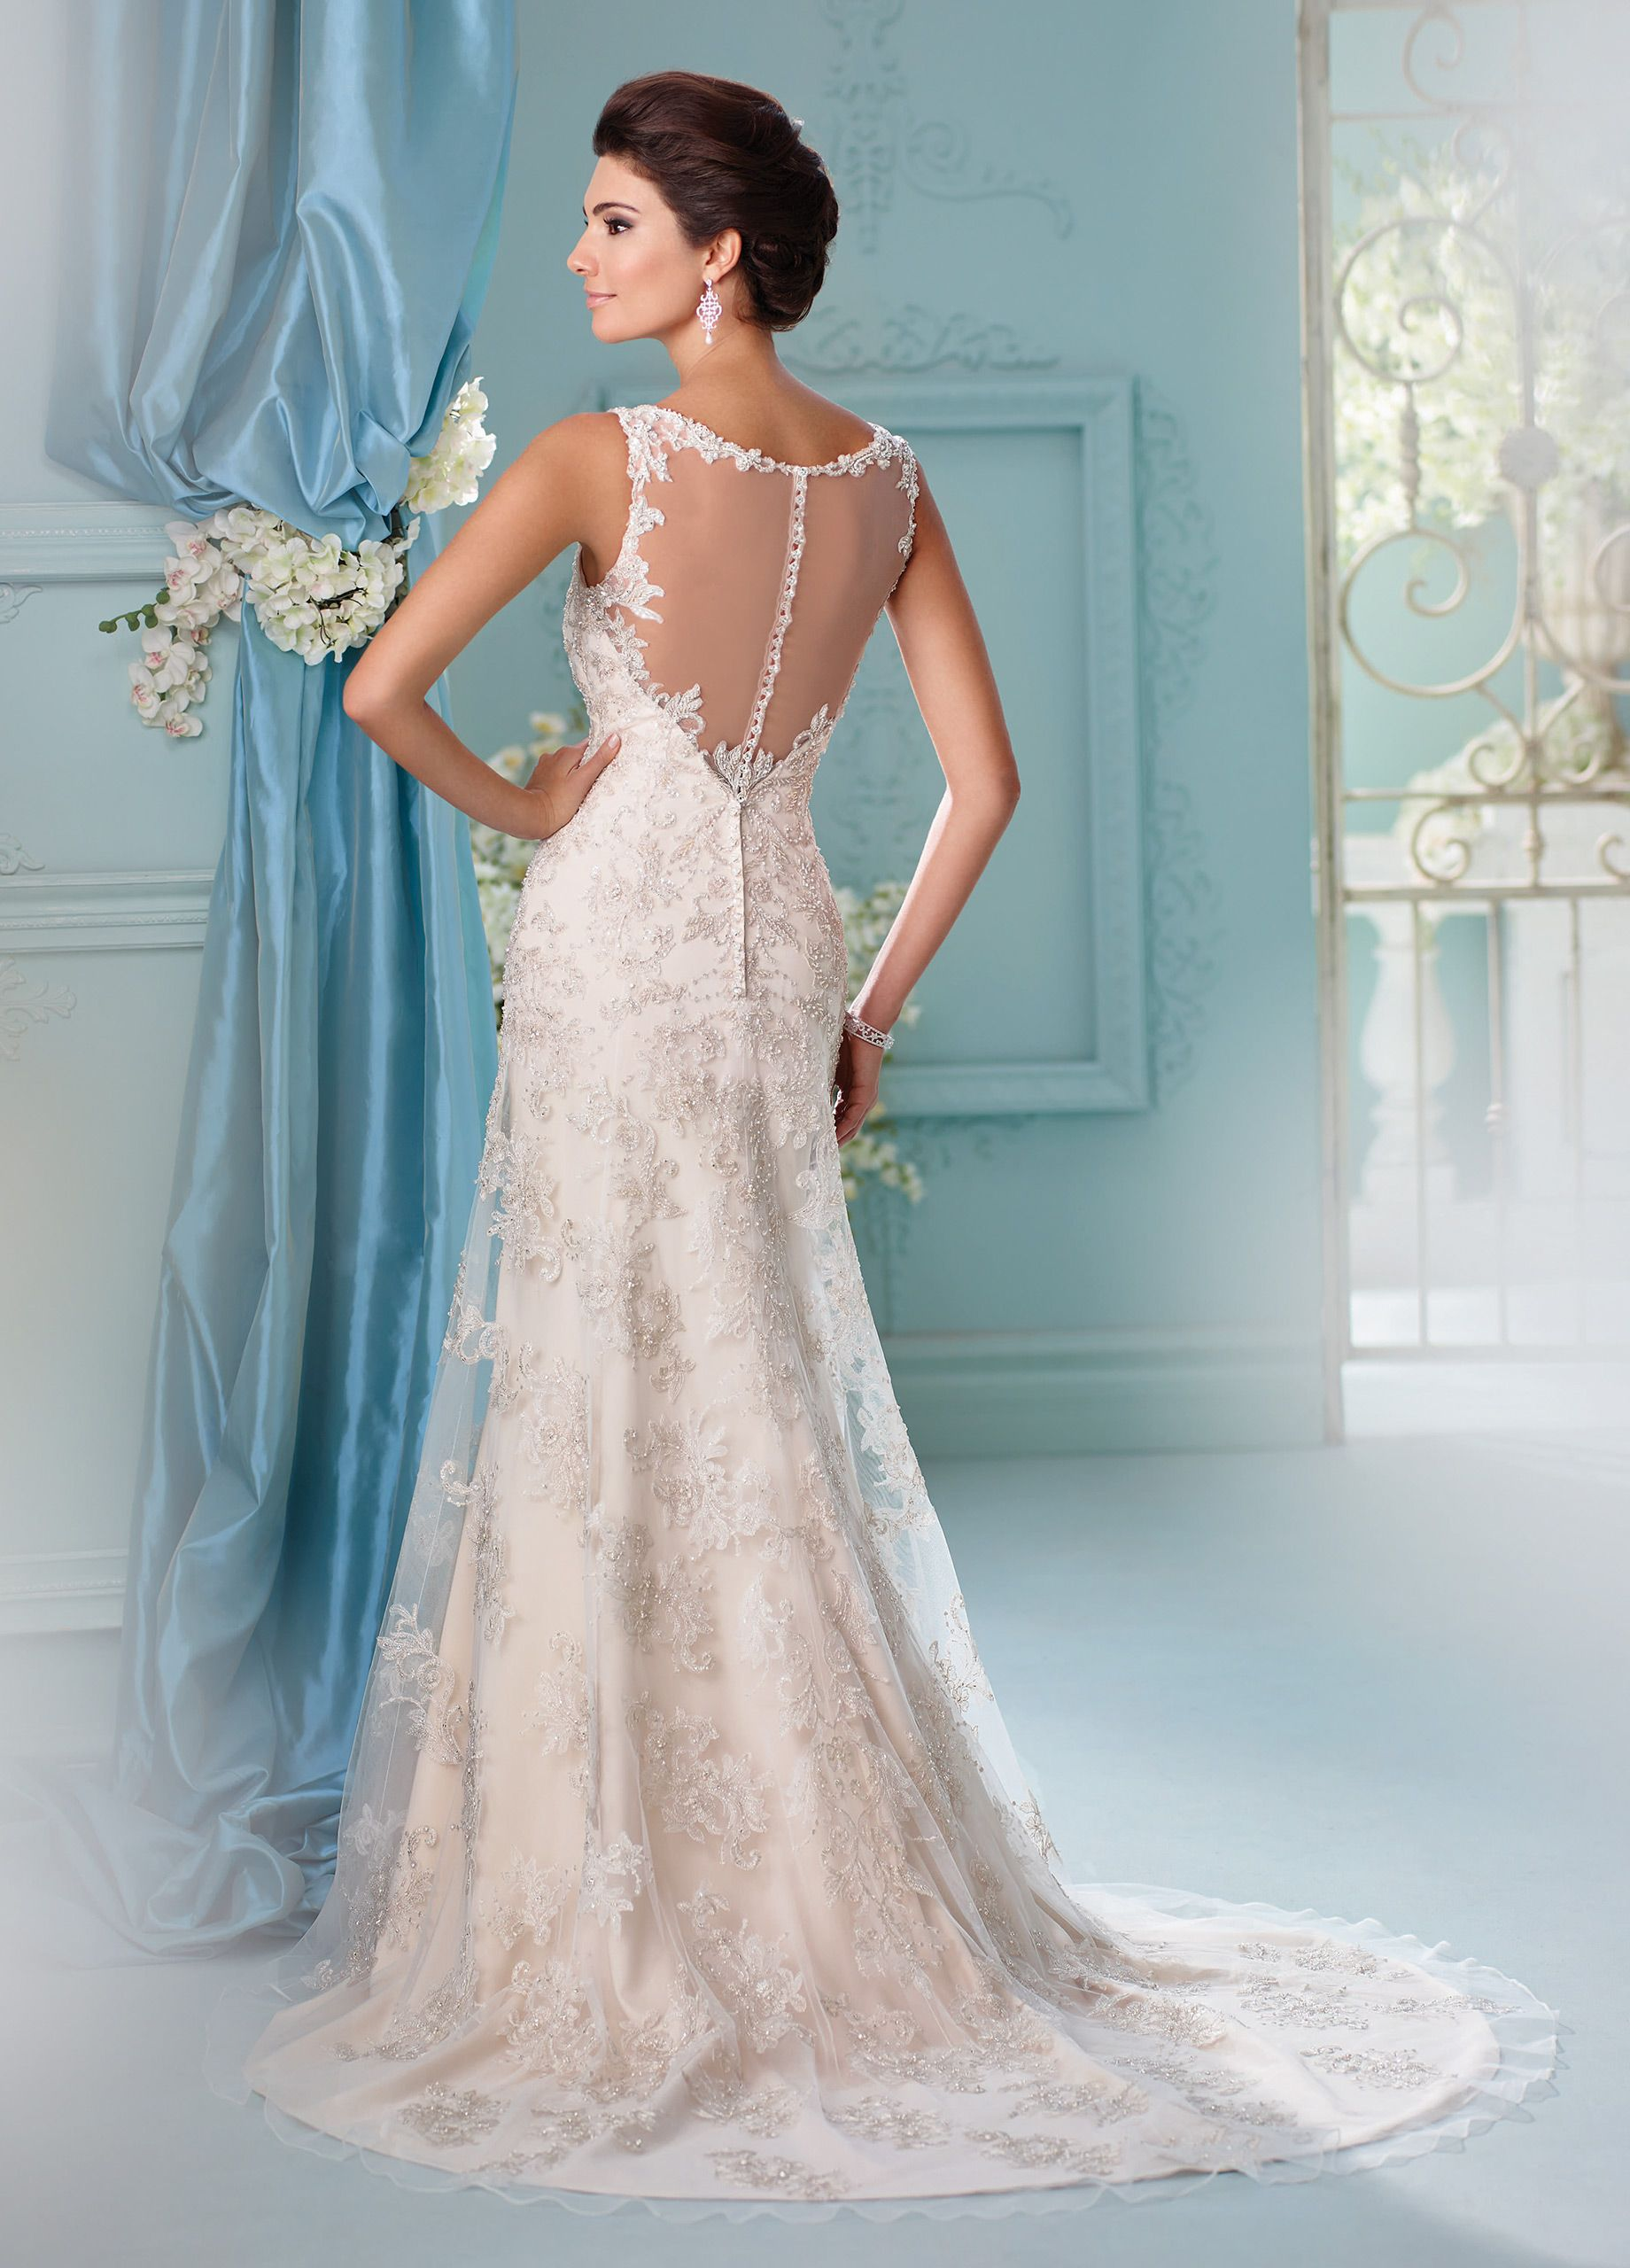 Outstanding Lazaro Blush Wedding Dress Sketch - All Wedding Dresses ...